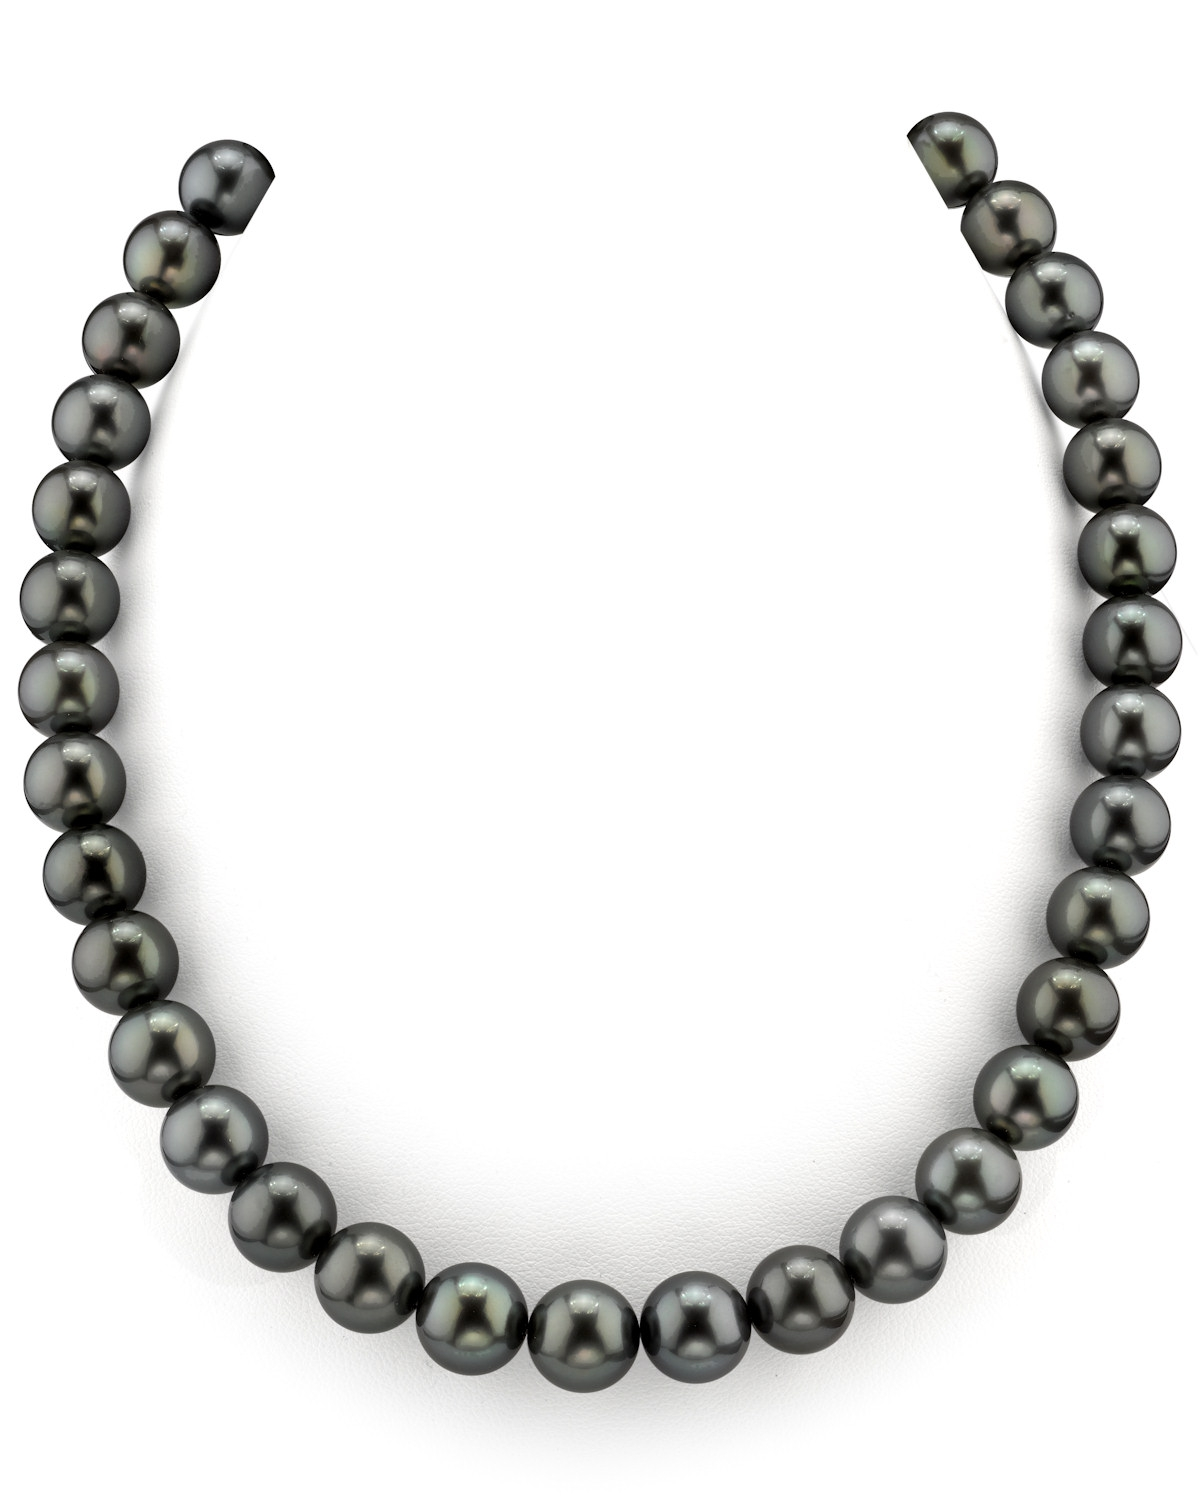 10-11mm Tahitian South Sea Pearl Necklace - AAAA Quality